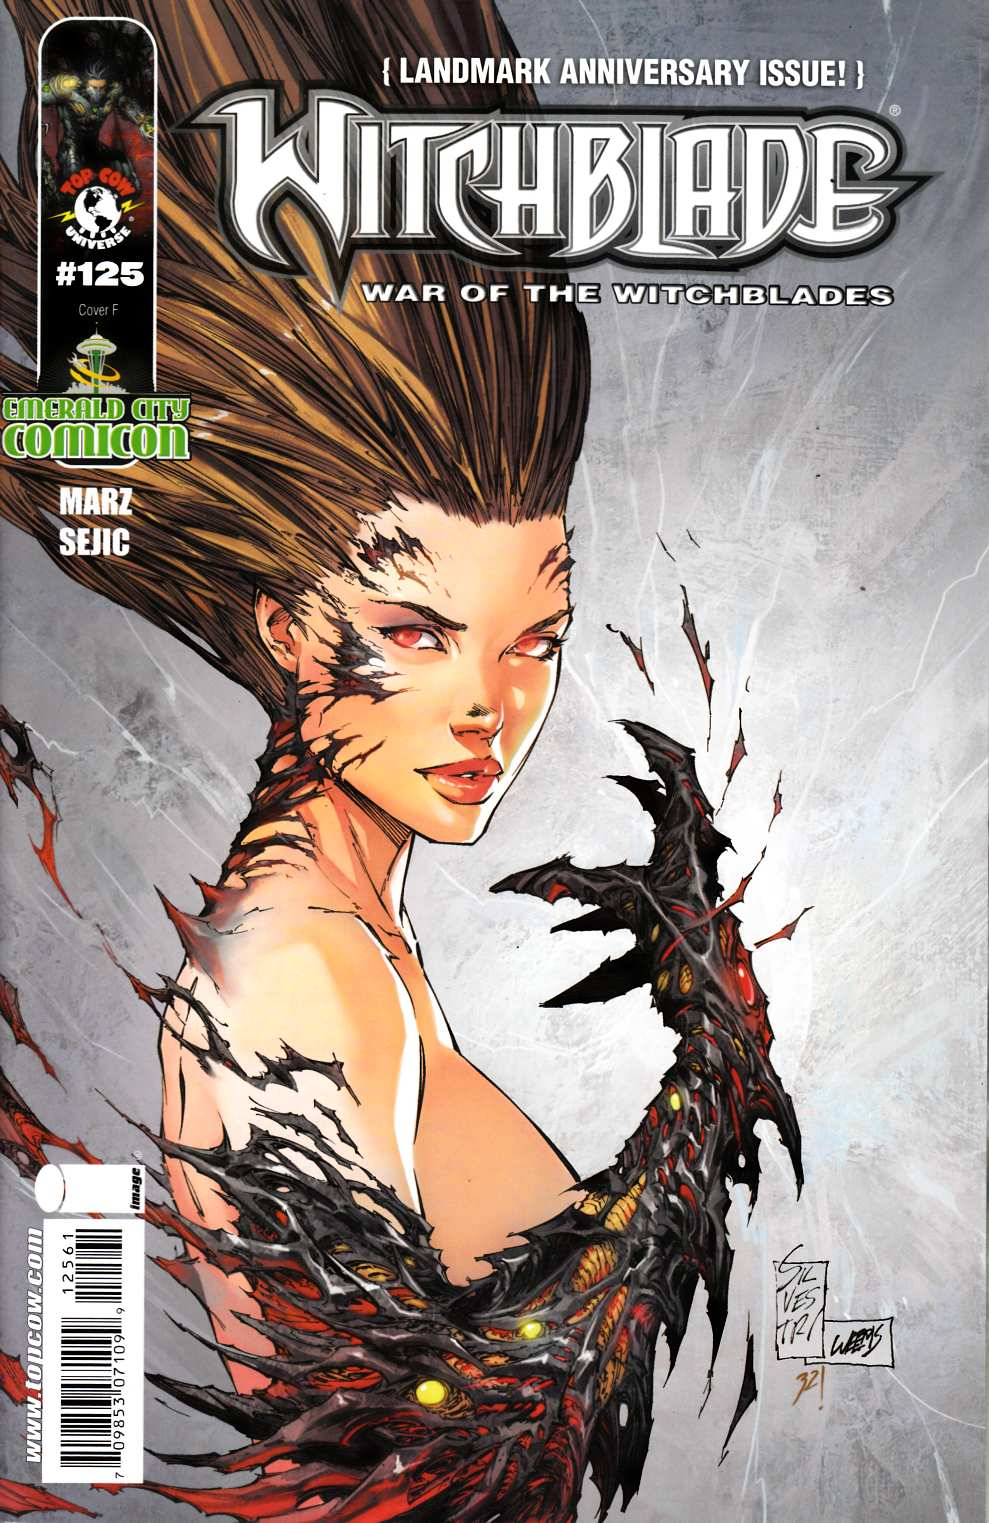 Witchblade #125 ECC Exclusive Very Good (4.0) [Image Comic] THUMBNAIL